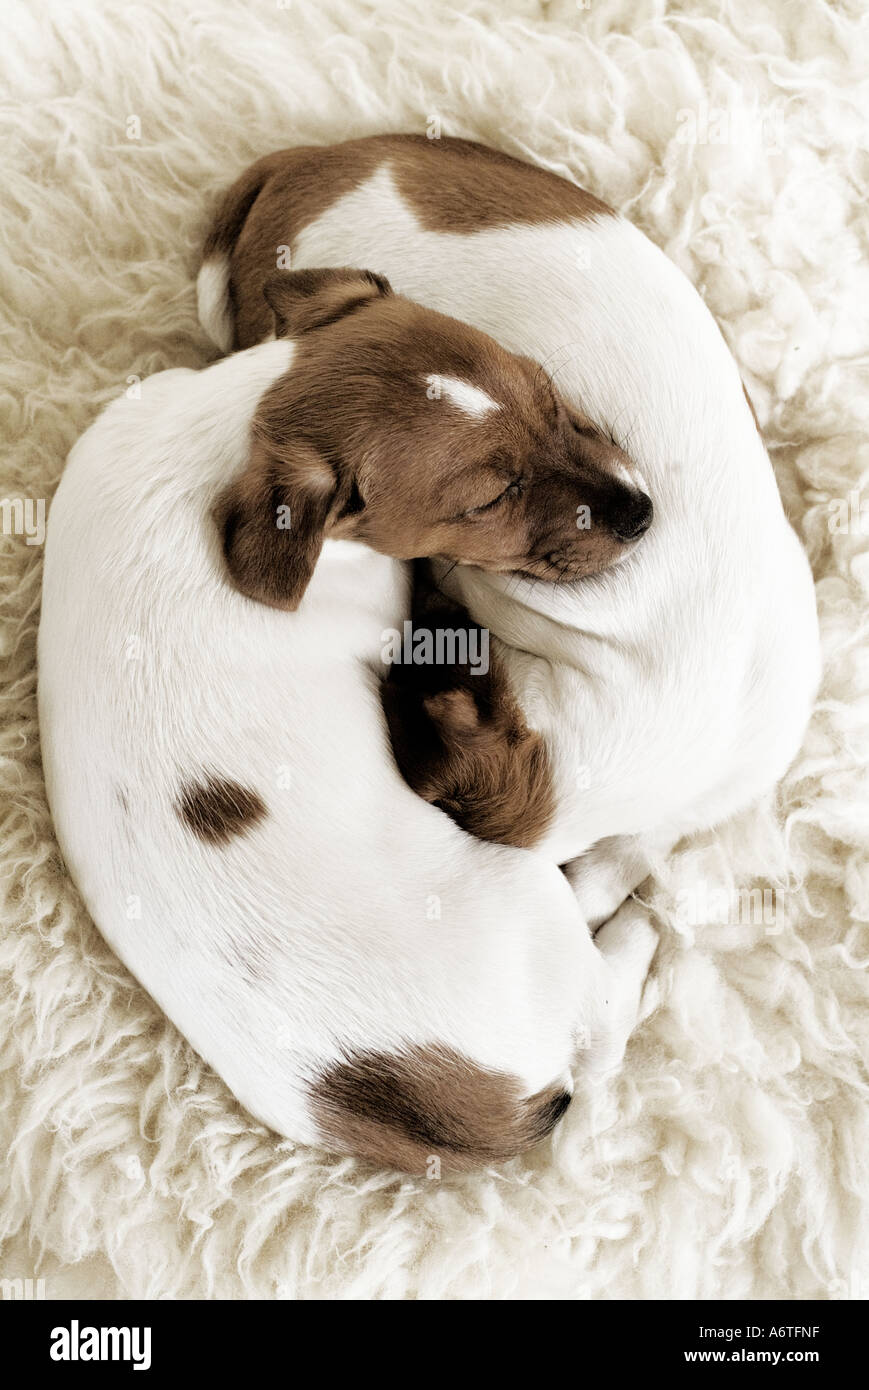 Two Jack Russell puppies sleeping - Stock Image